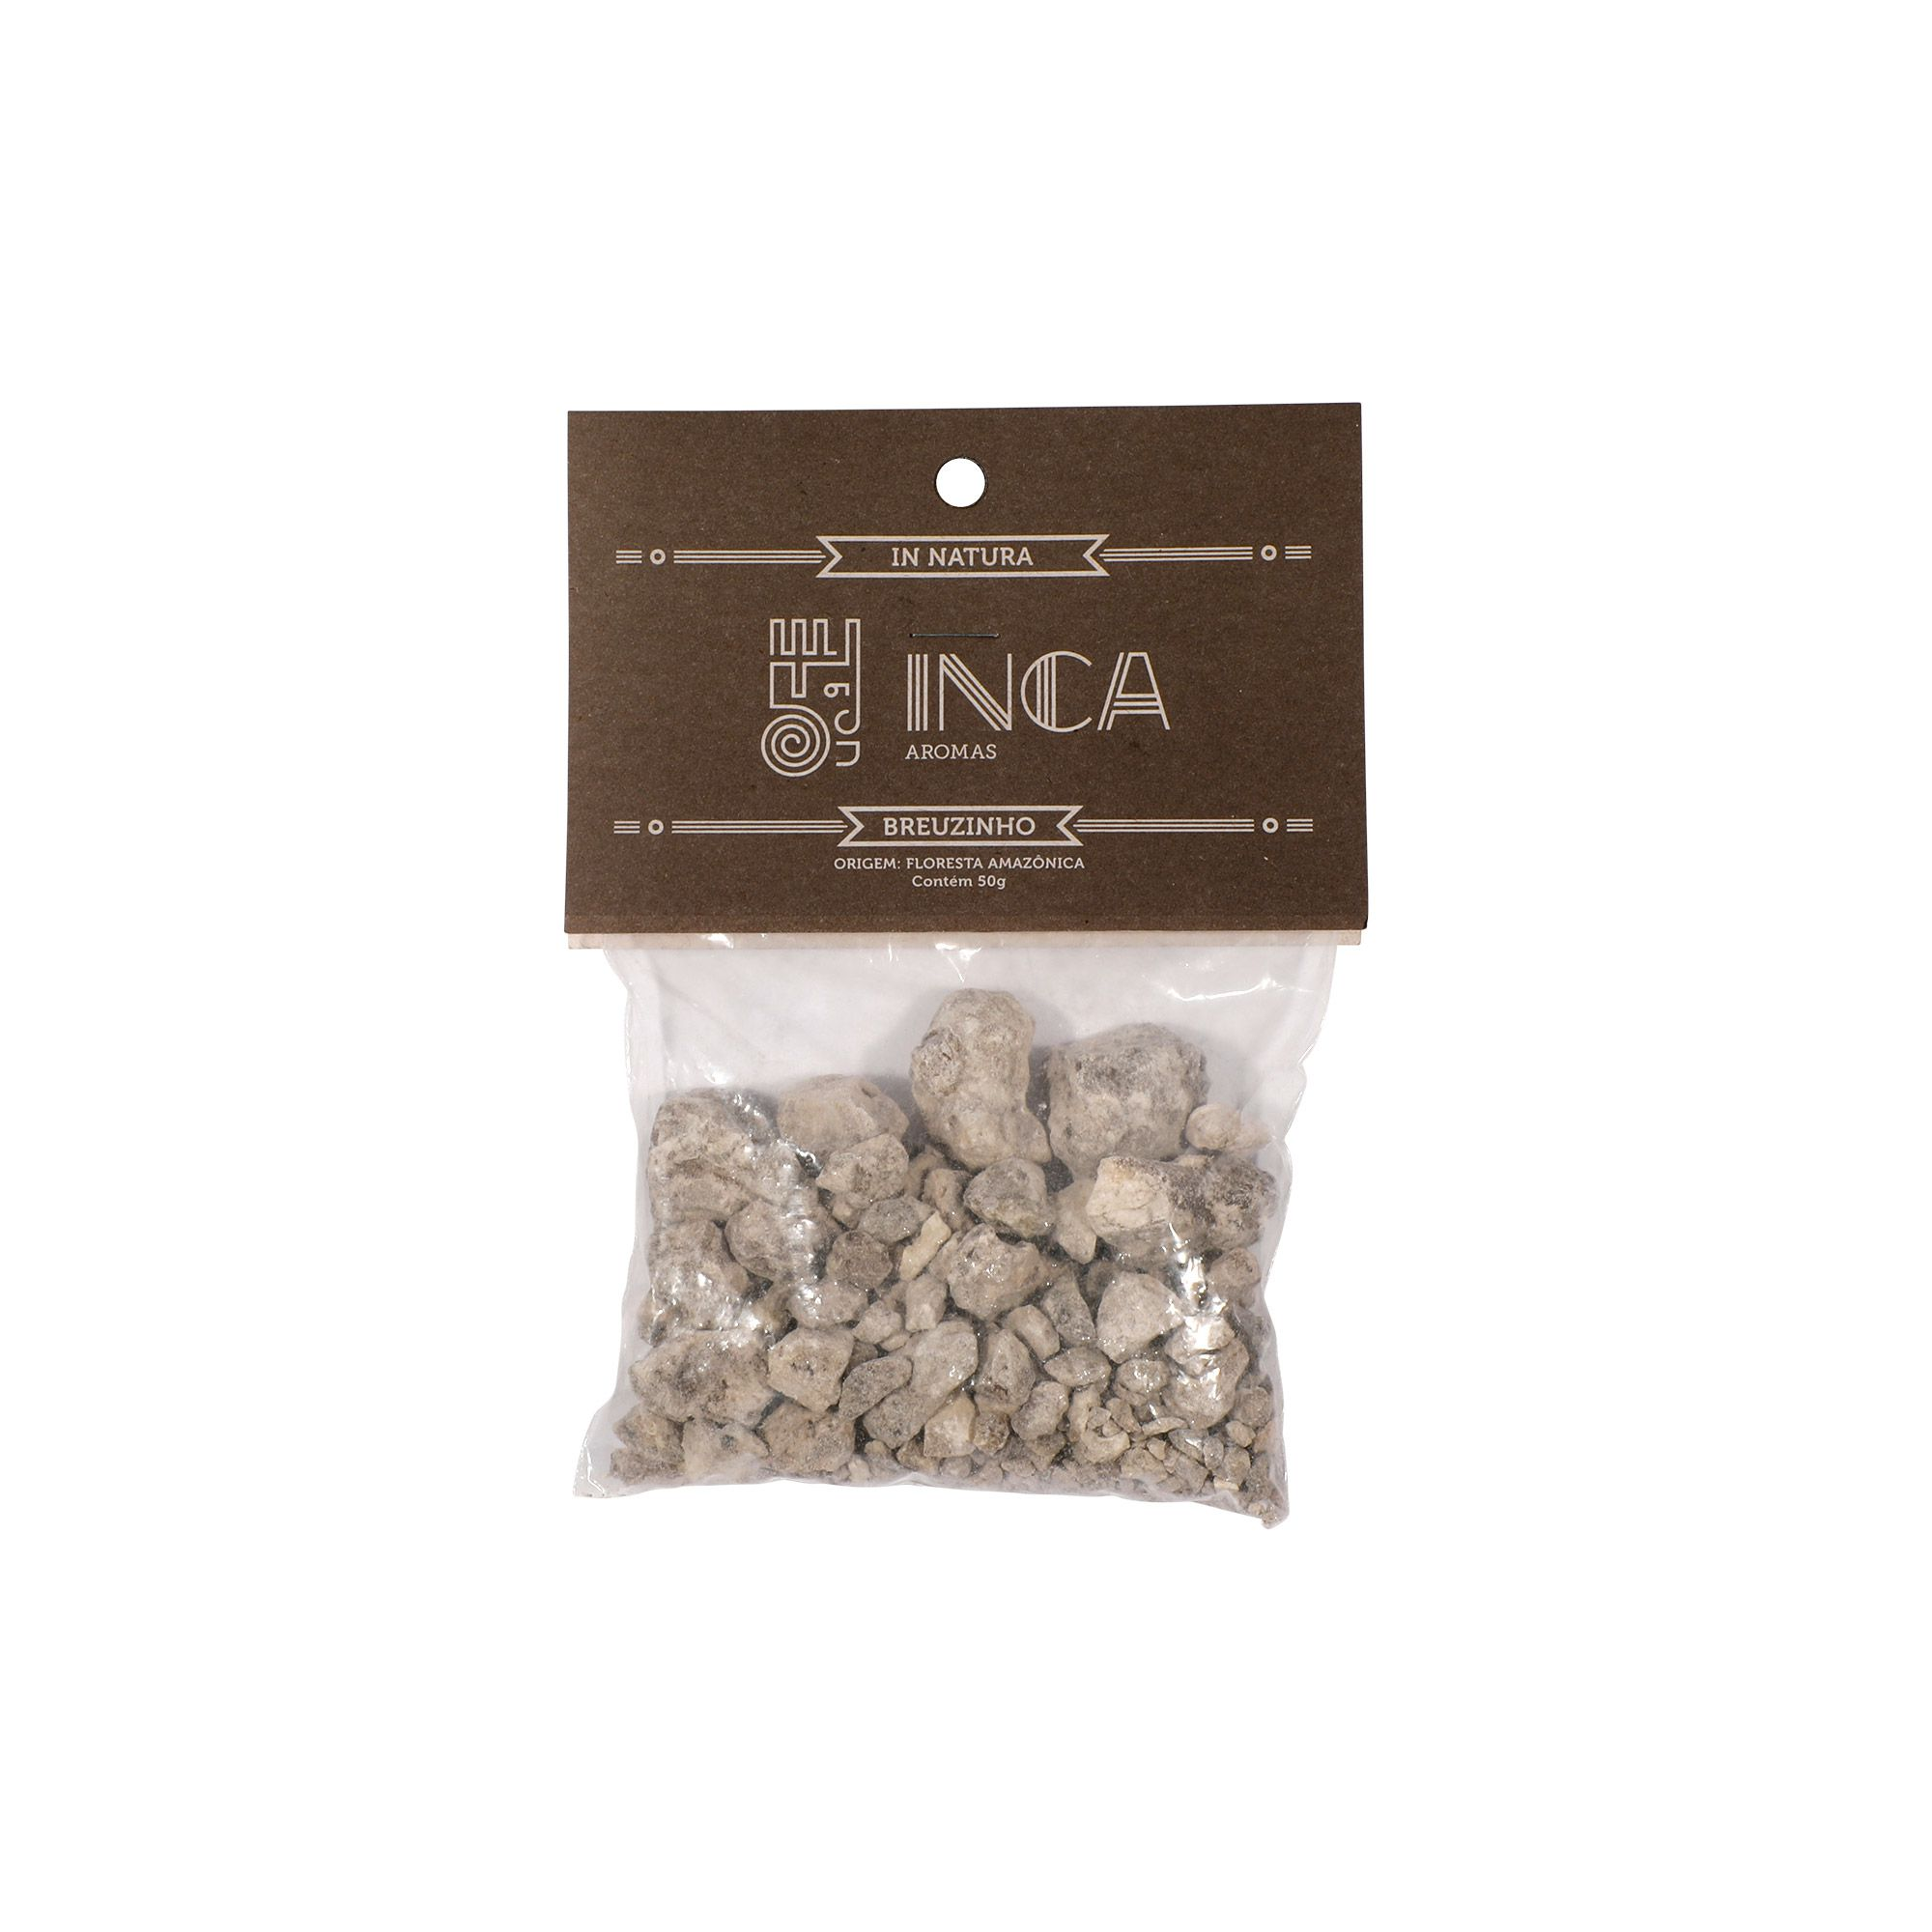 Incenso in natura Breu Branco (50g)